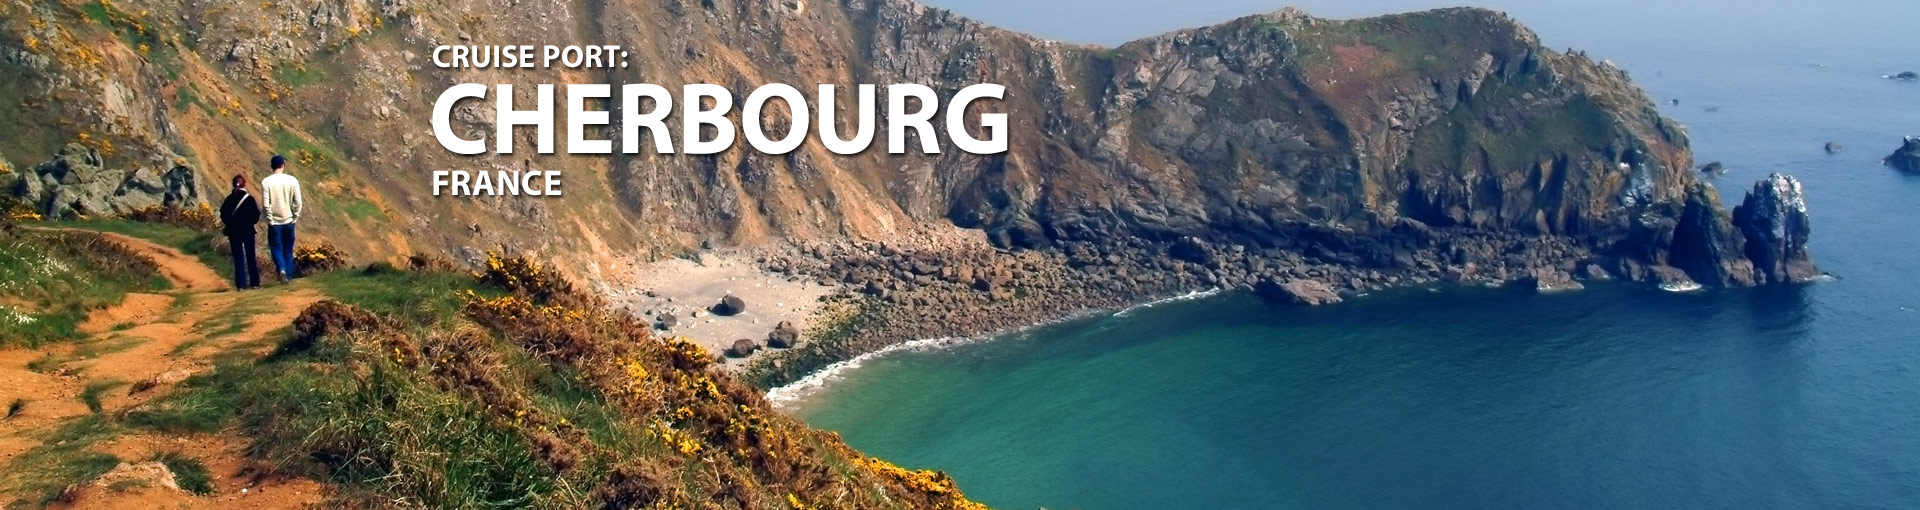 Cruises from Cherbourg, France